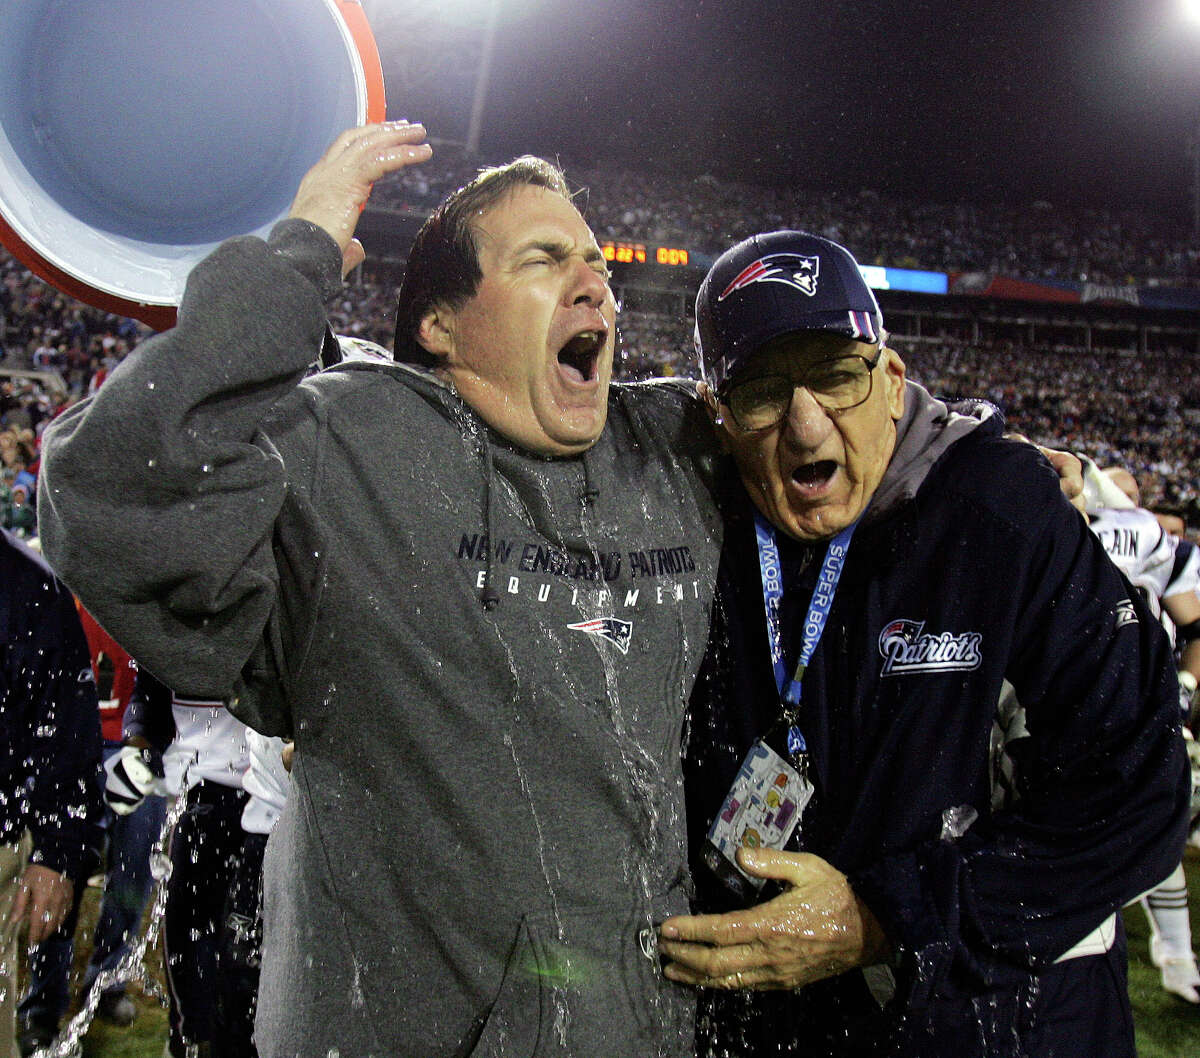 It's been 10 years since Bill Belichick felt the chill and thrill of winning a Super Bowl.